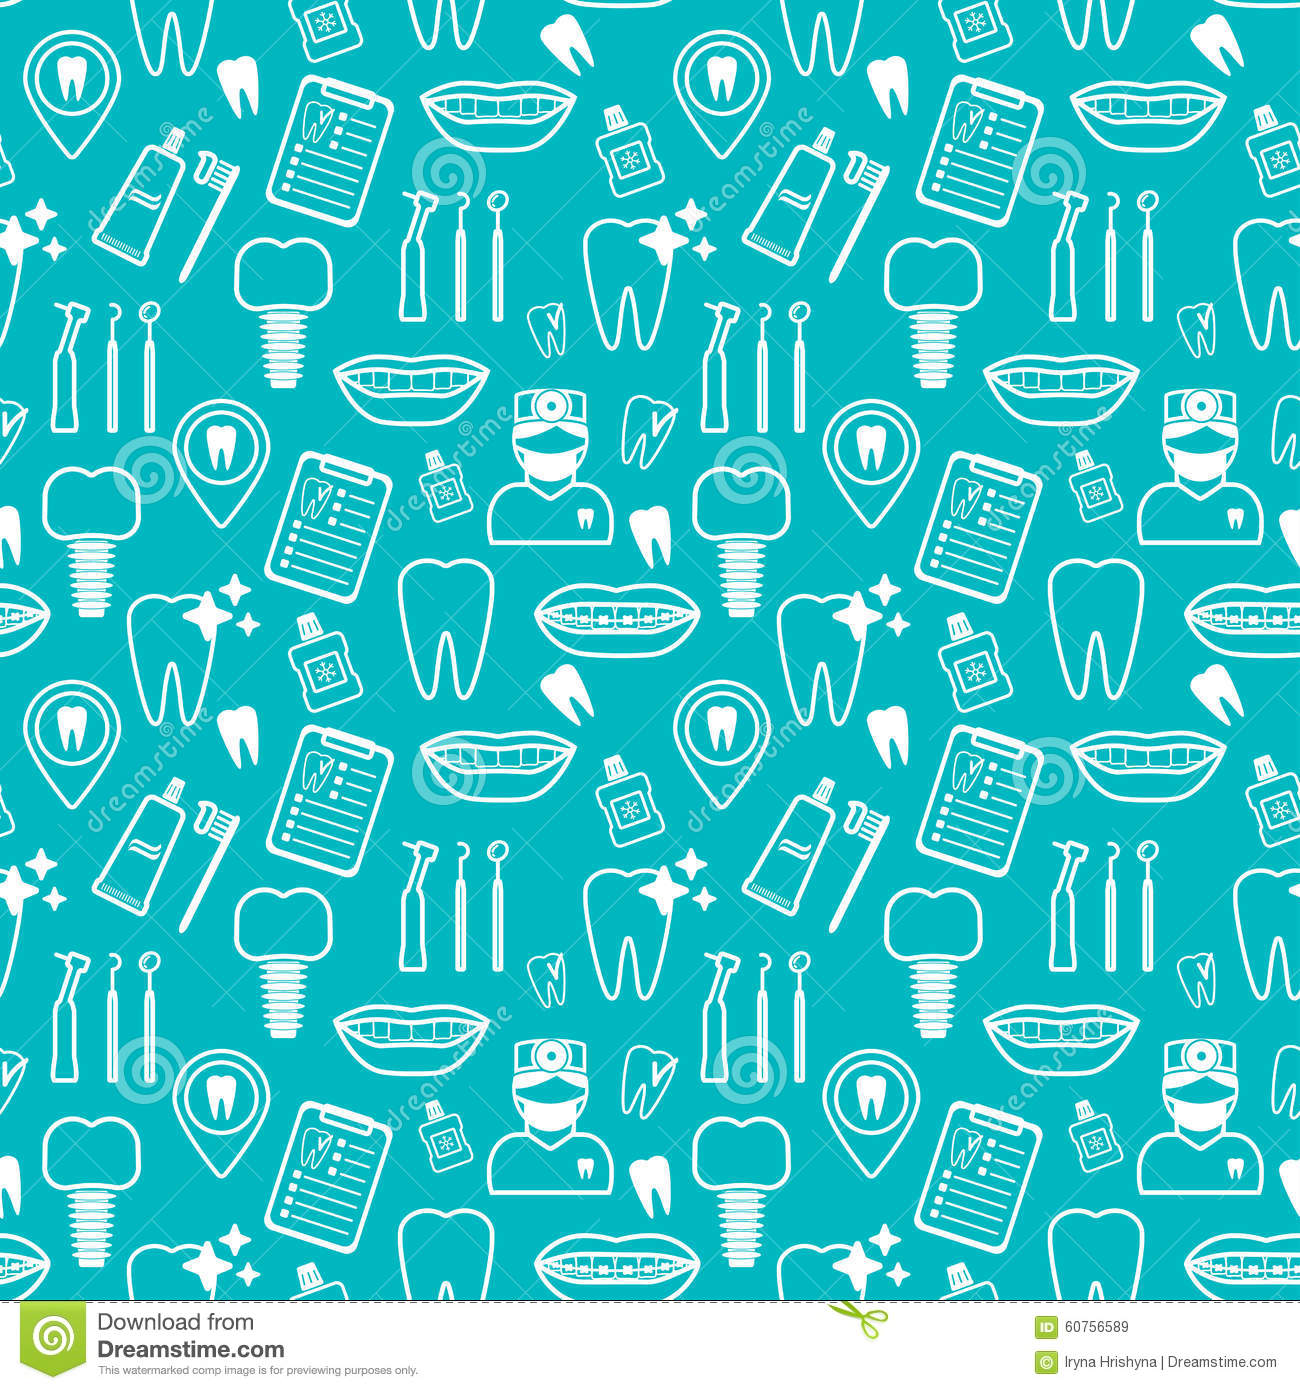 Stock Illustration Dental Seamless Pattern White Linear Icons Blue Backdrop Flat Design Vector Illustration Image60756589 on dental probe design